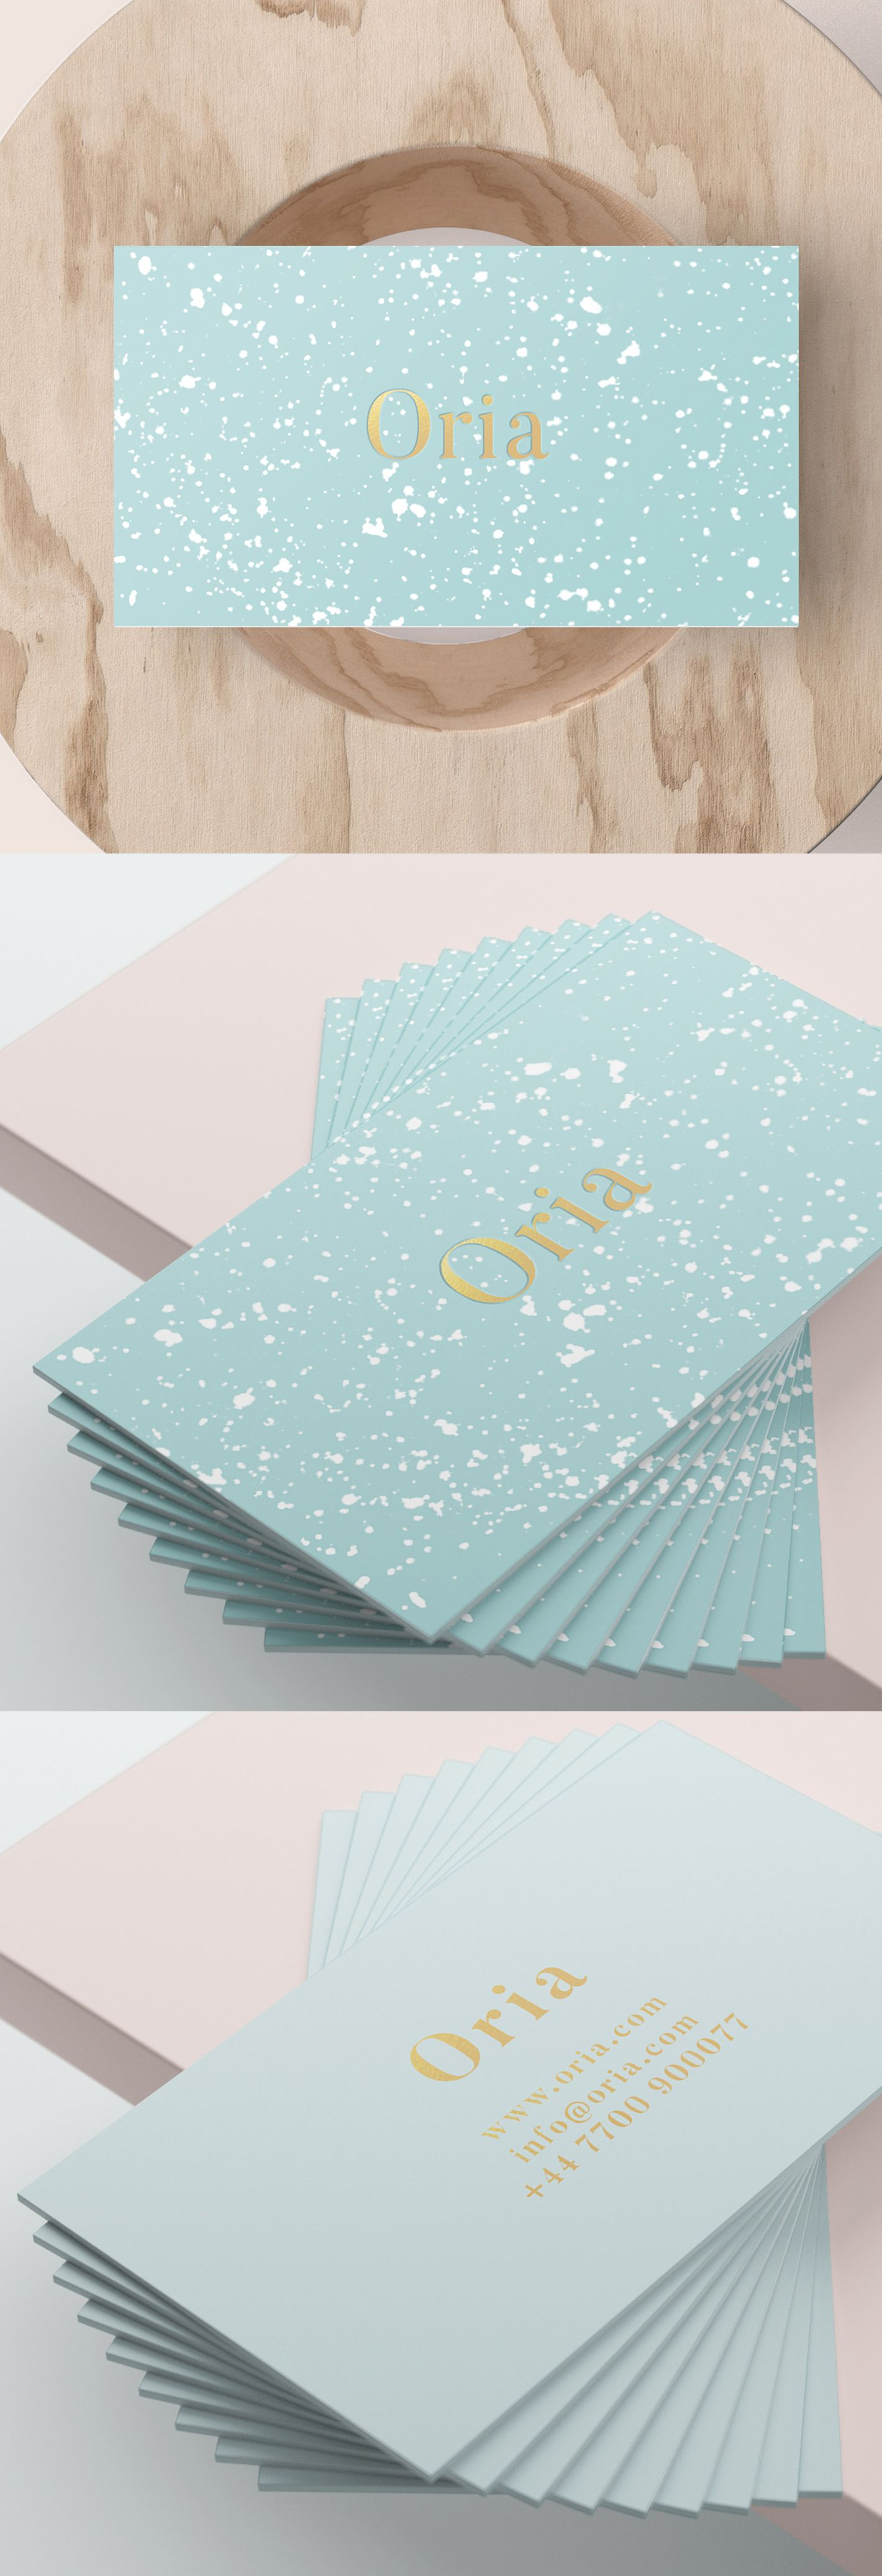 A luxury business card design light blue gold foil and